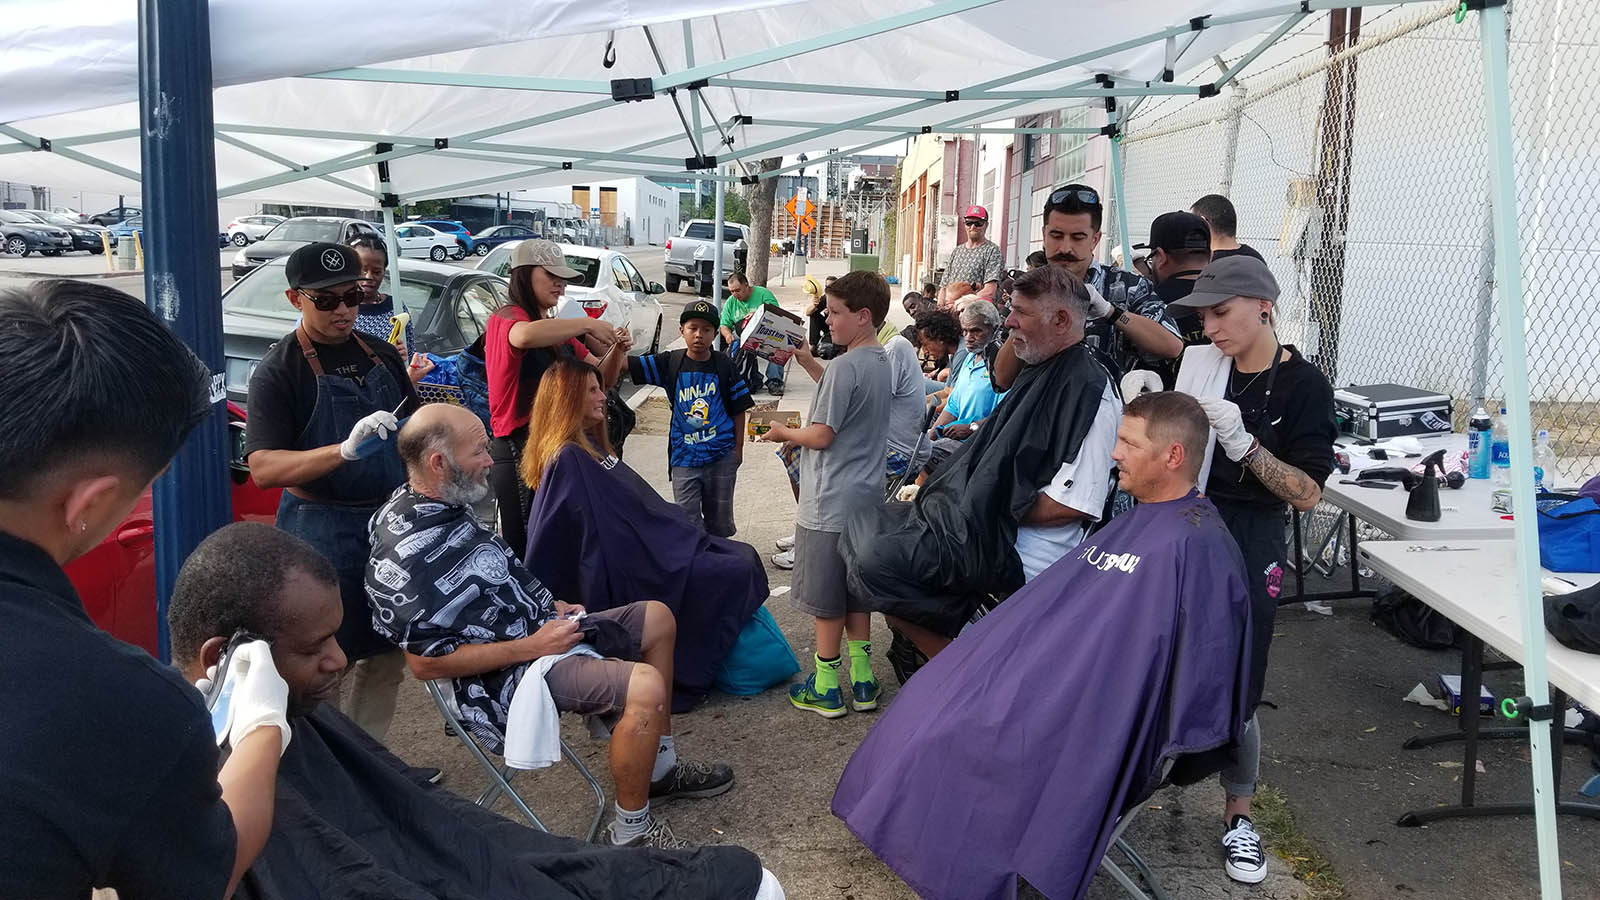 Volunteer Thanks for our Special Summer Event Feed Clothe Cut Hair Downtown Homeless